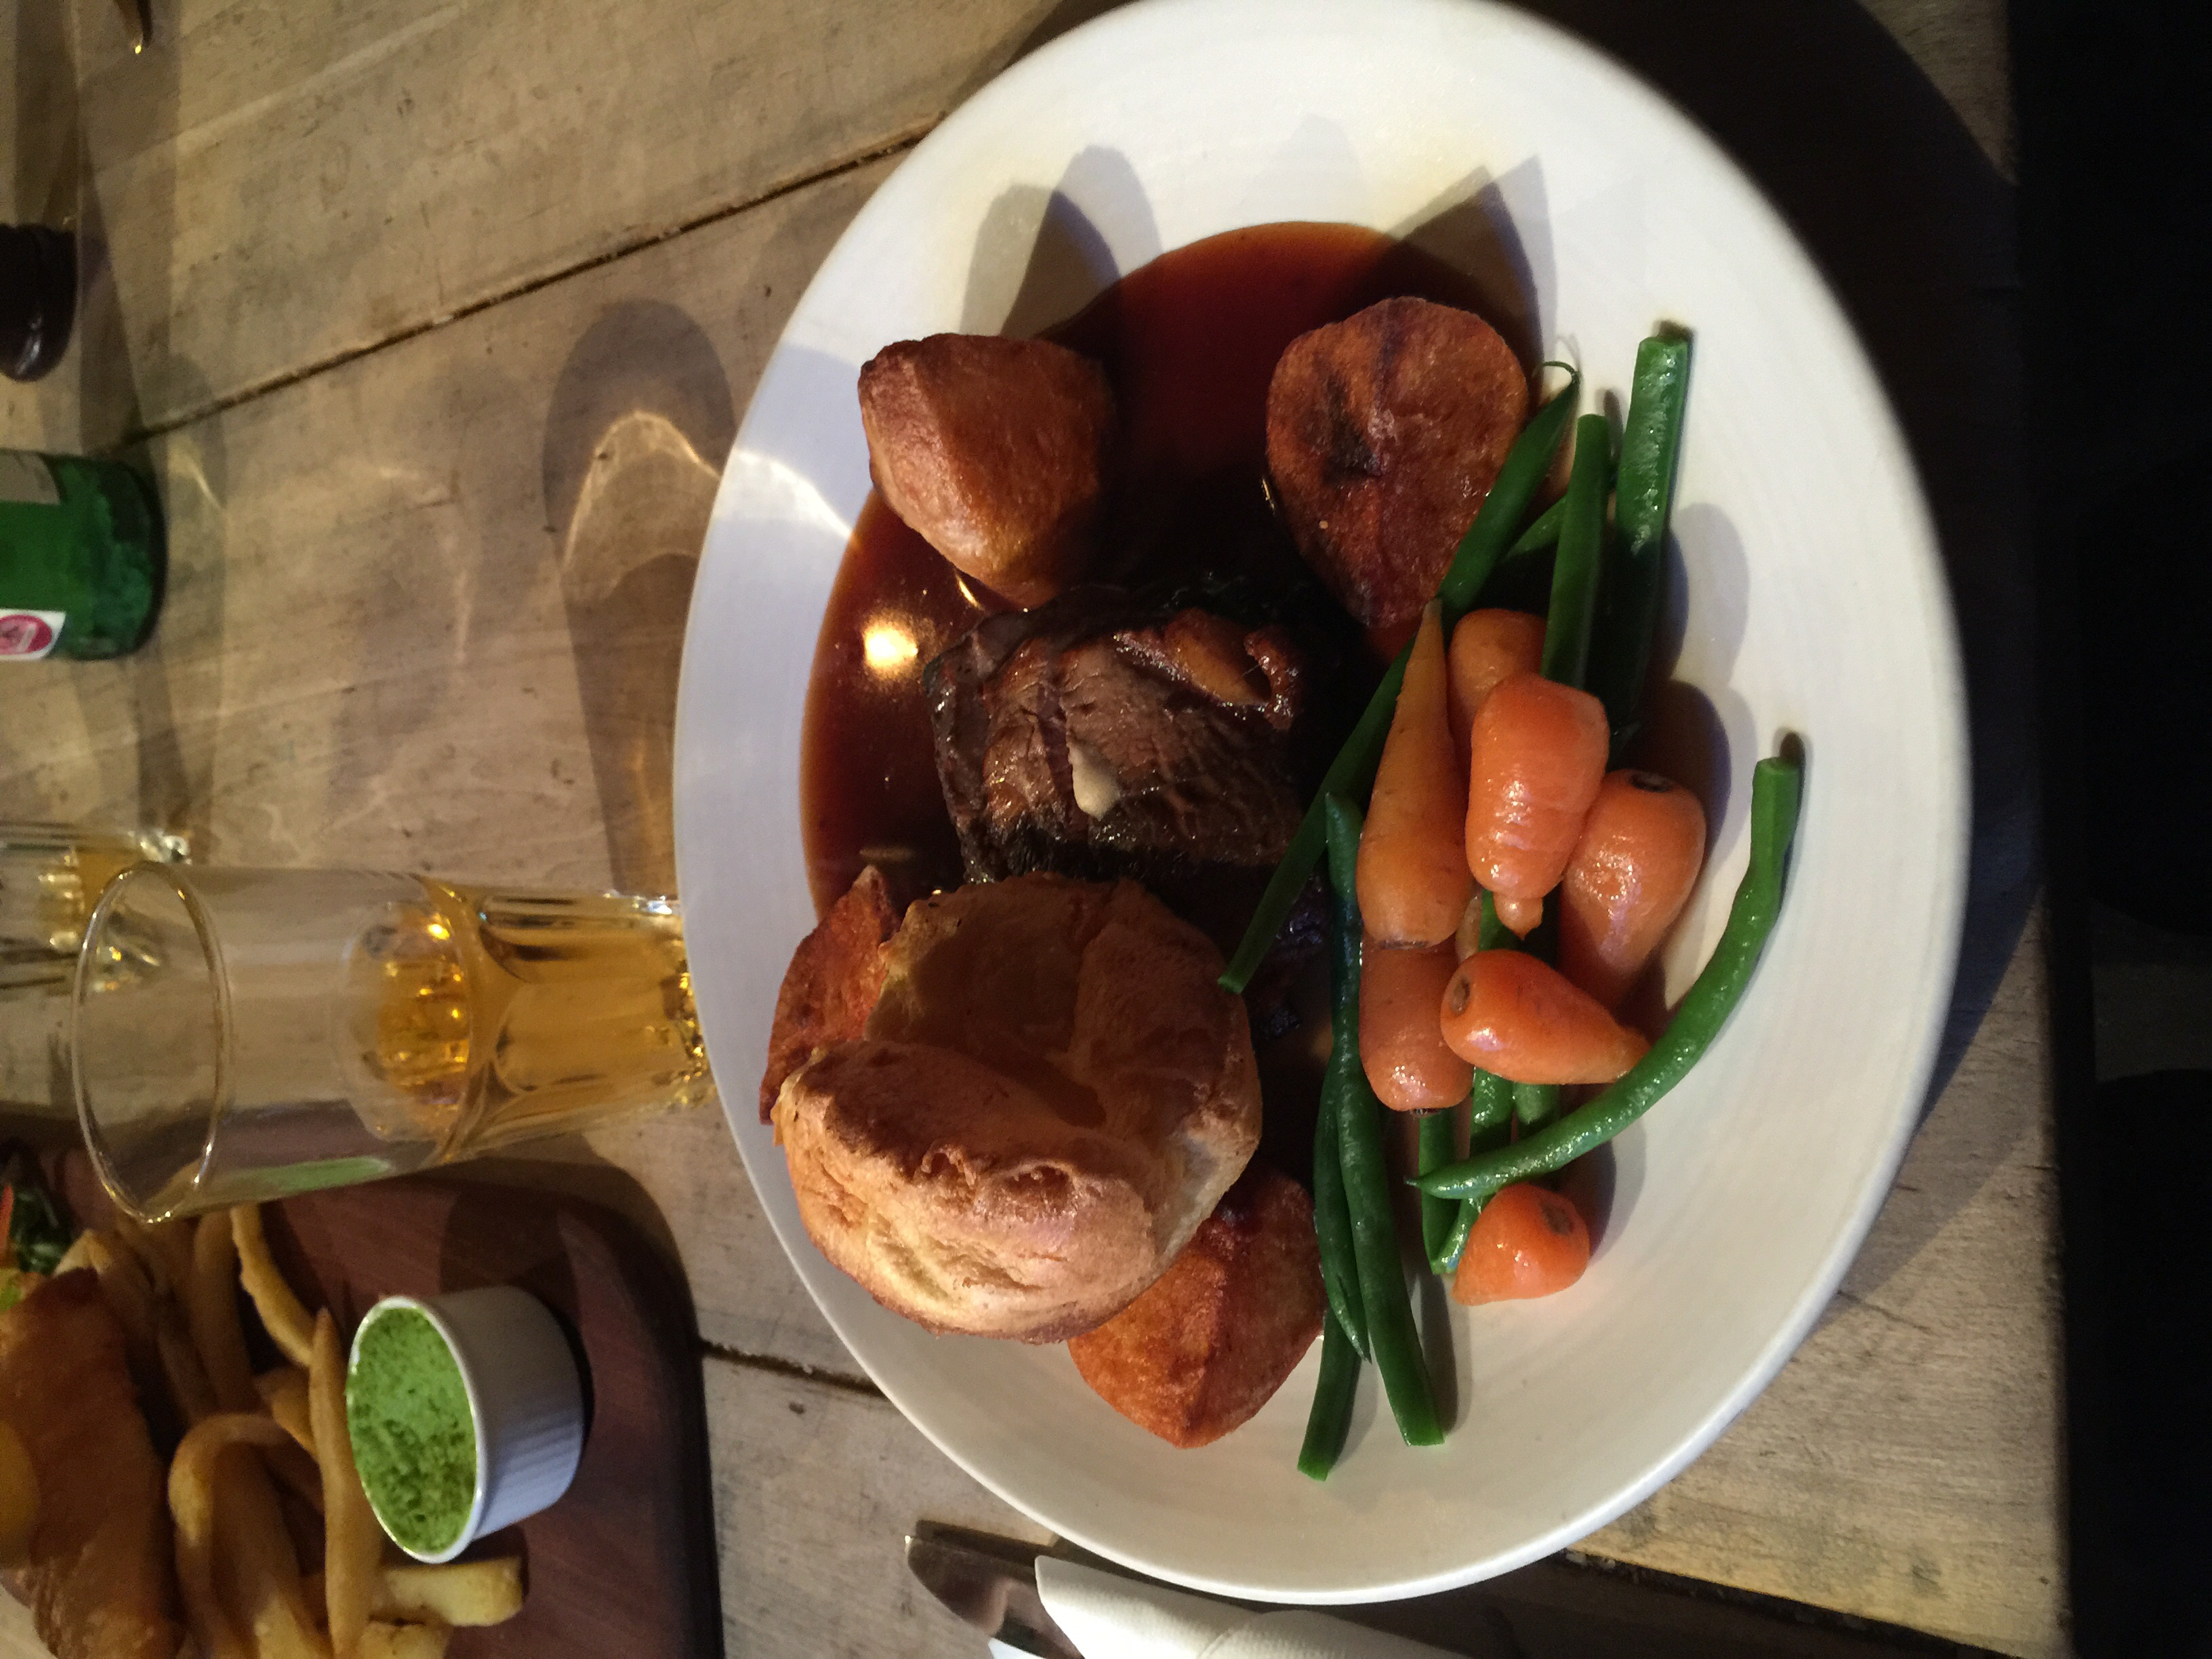 Yorkshire pudding, treacle glazed sirloin and cider